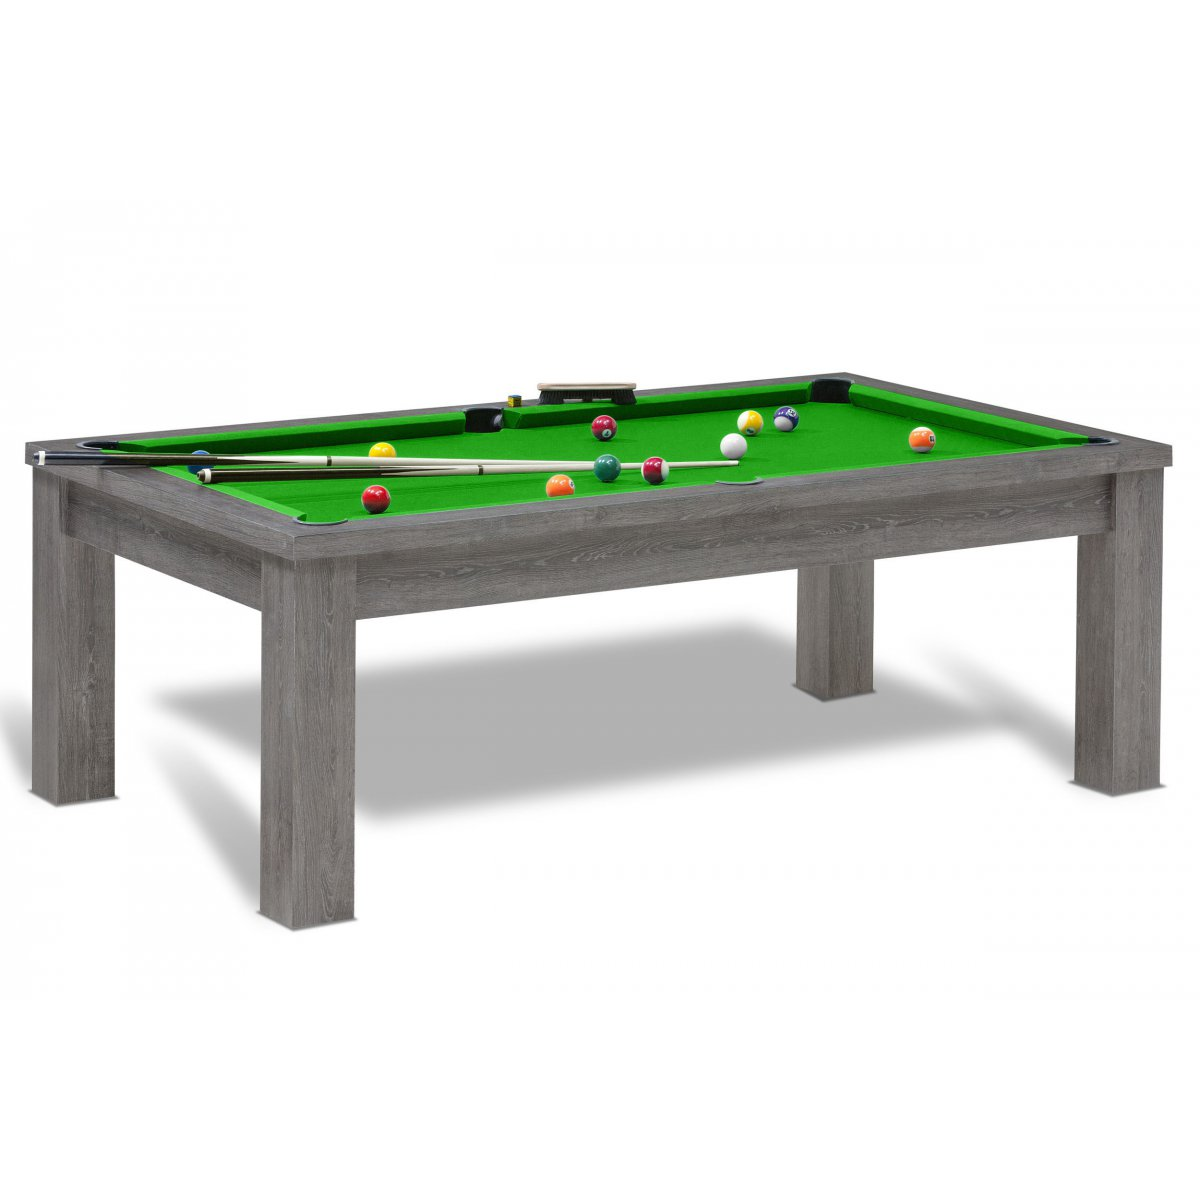 billard am ricain table de jeu de billard us convertible. Black Bedroom Furniture Sets. Home Design Ideas